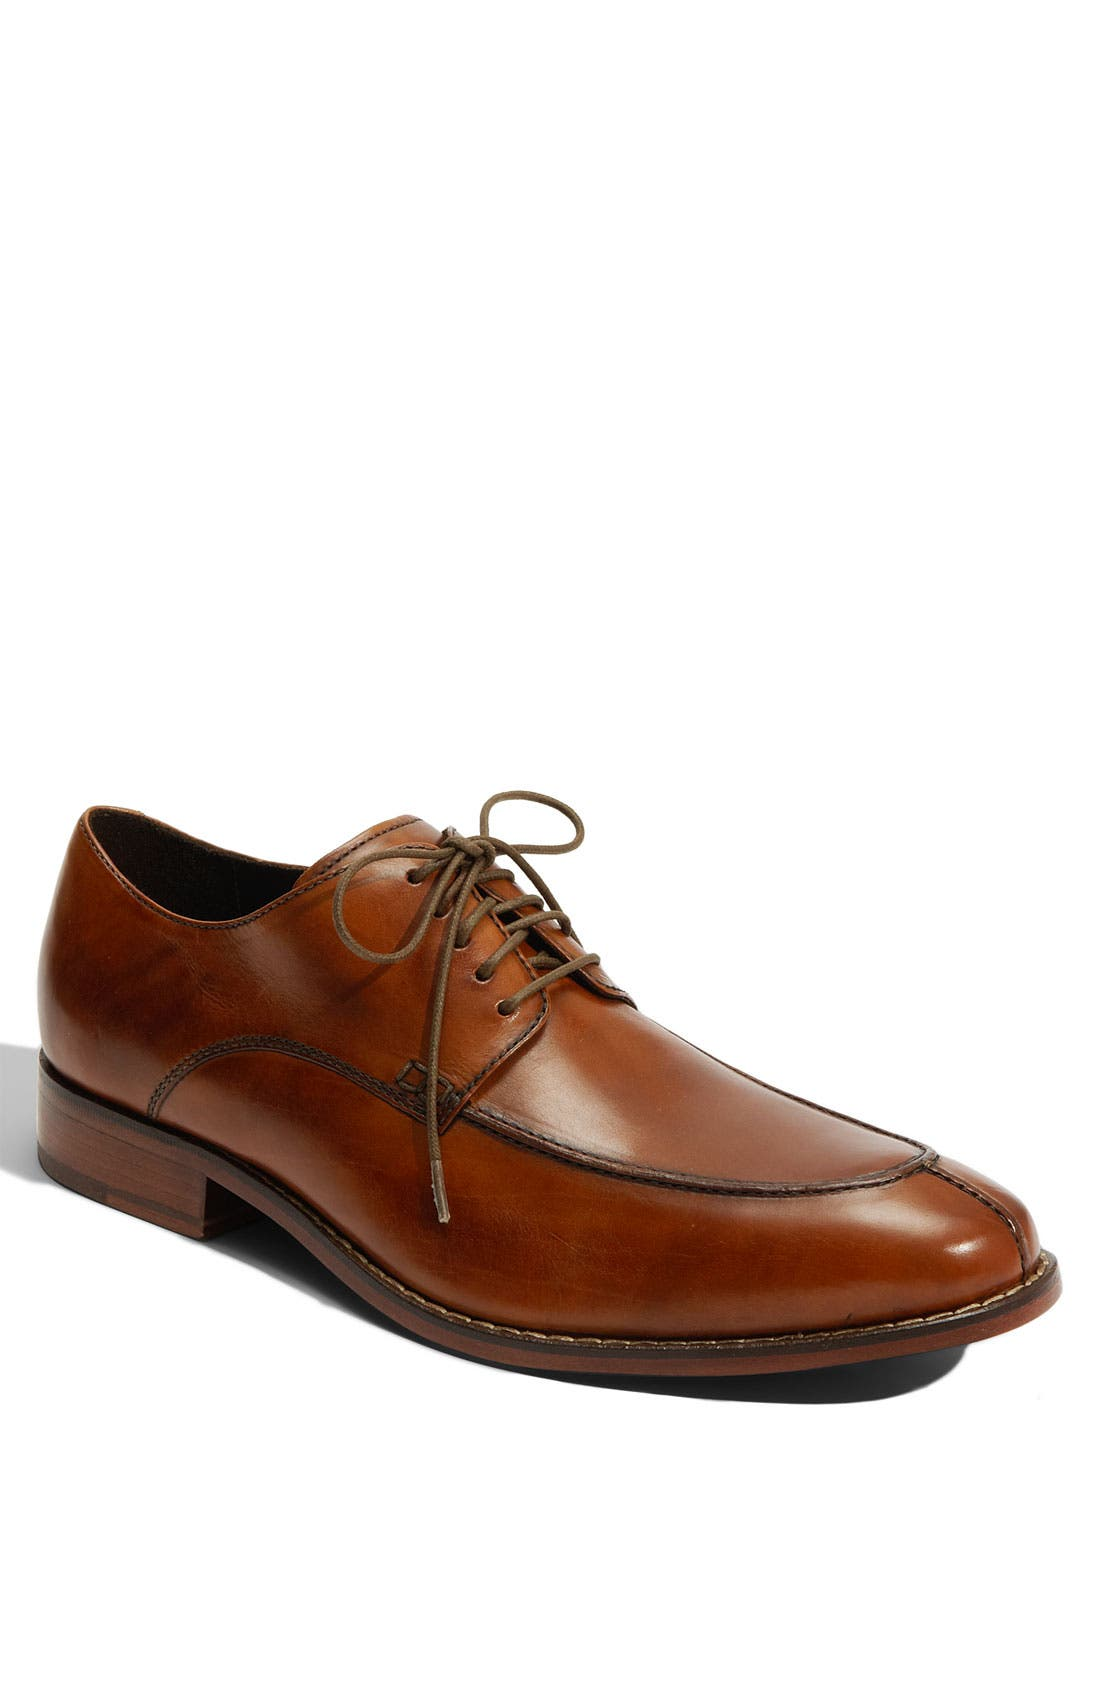 Main Image - Cole Haan 'Air Colton Split' Oxford